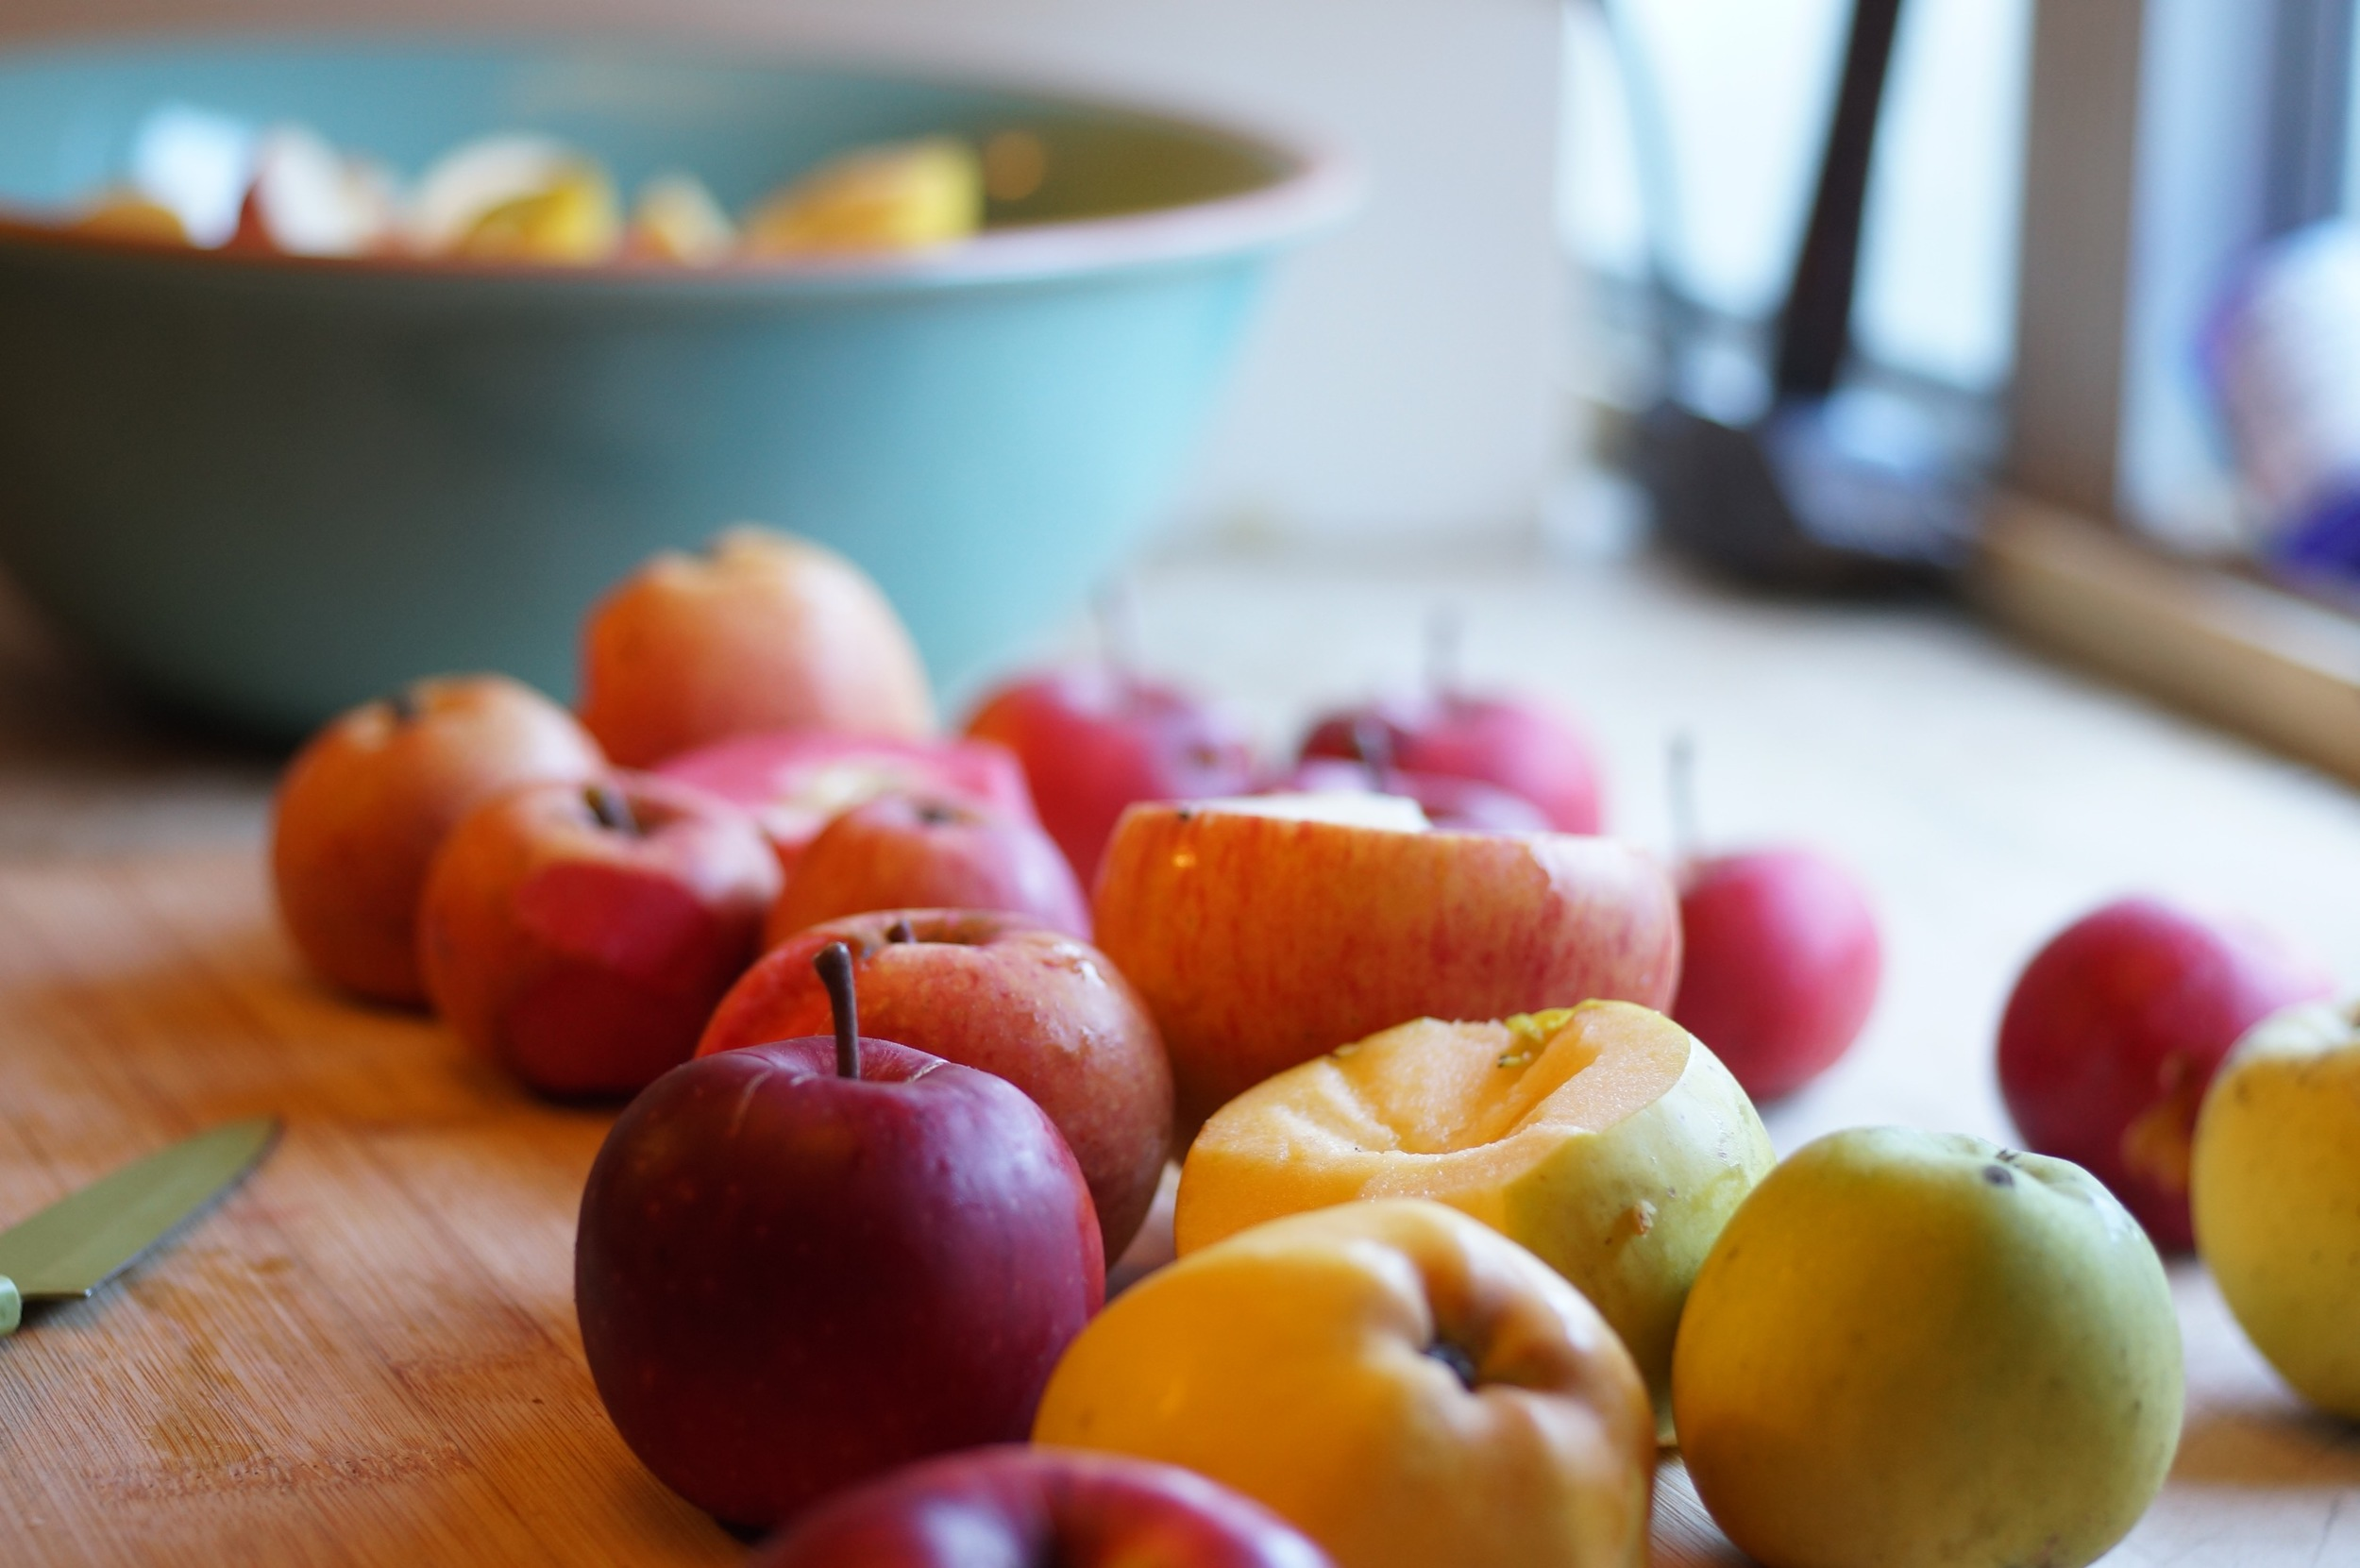 Misc. late apples for apple butter experiment